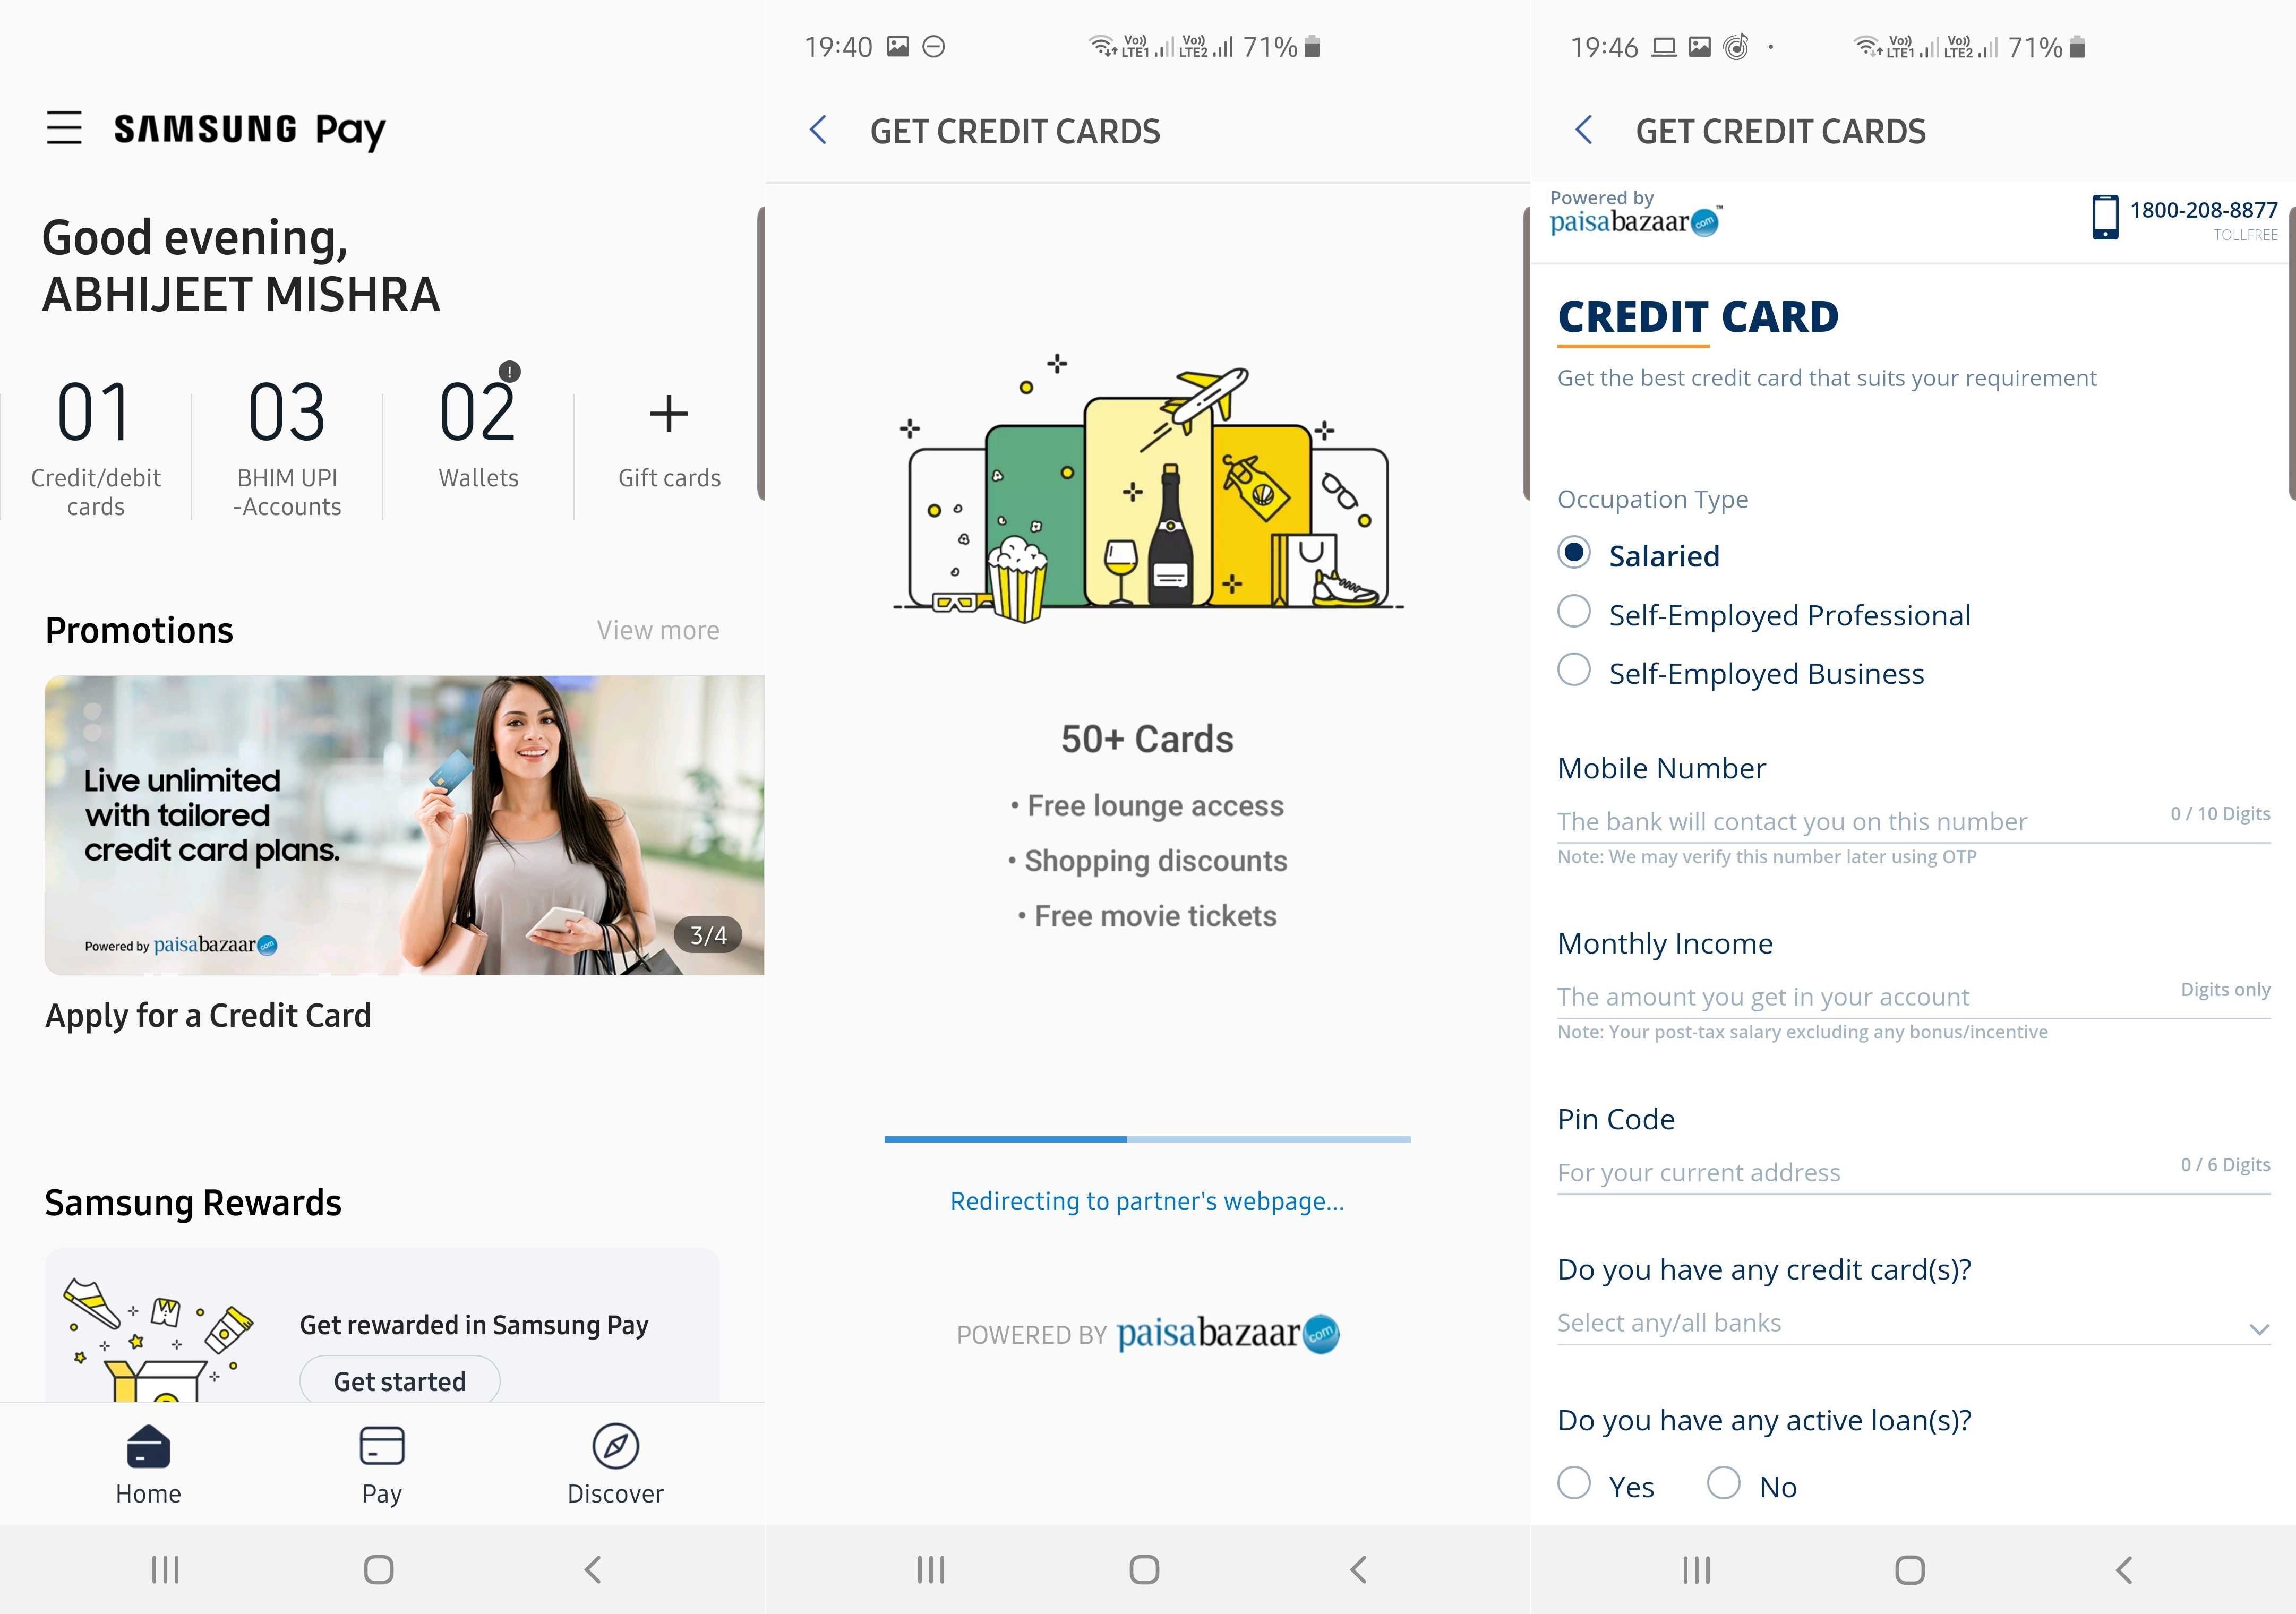 Samsung Pay in India now lets you apply for loans and credit